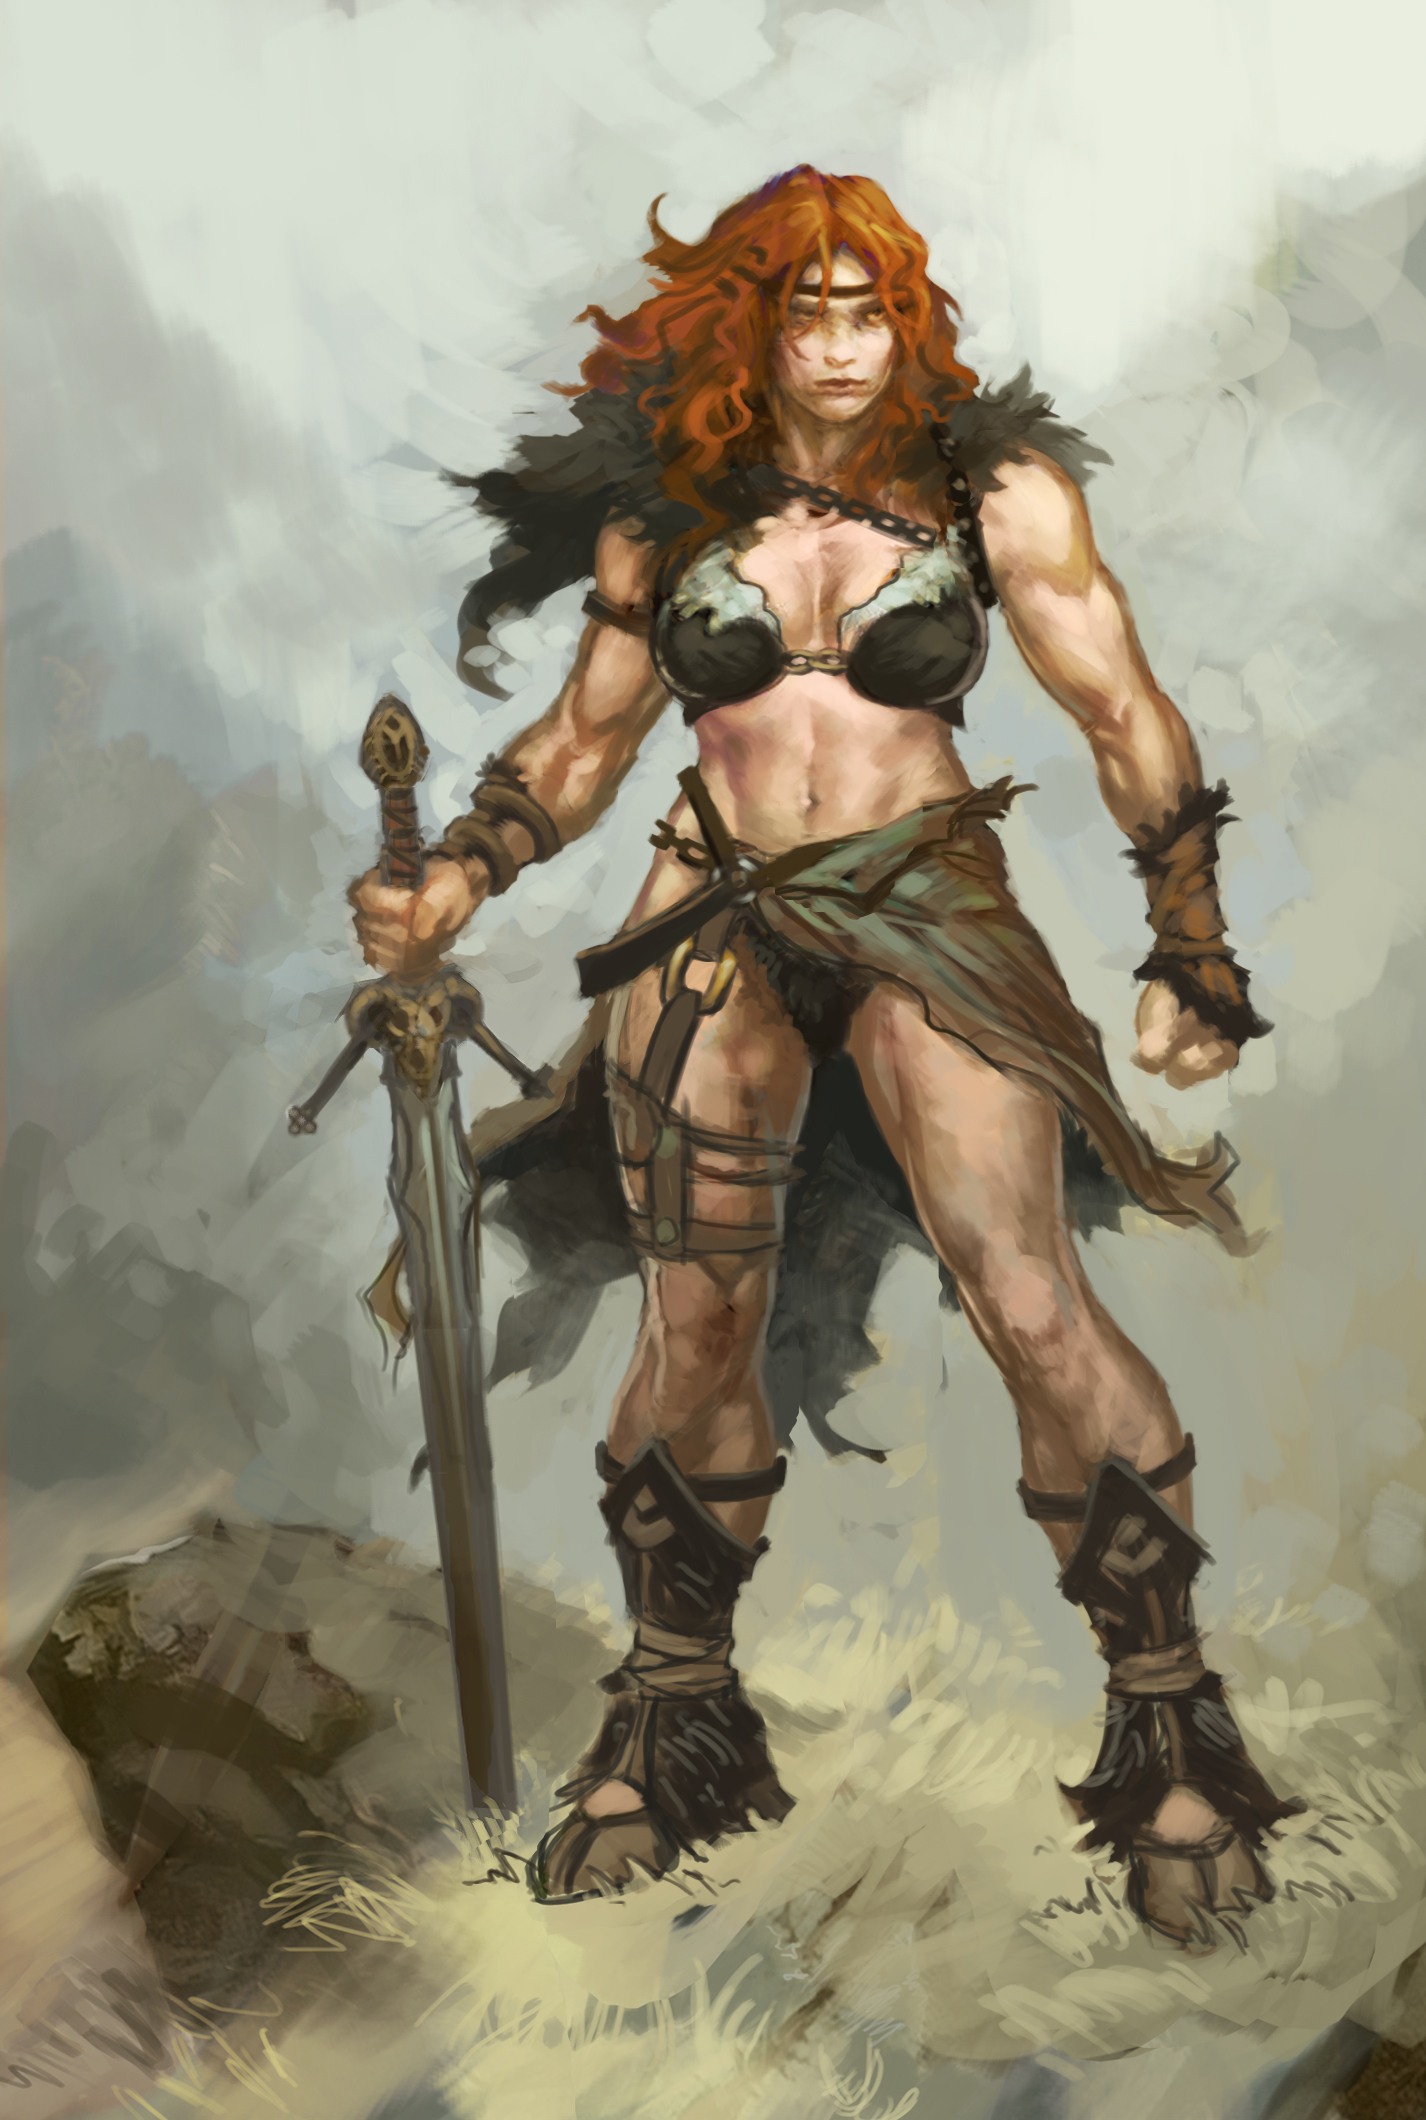 Female barbarian pictures anime comics